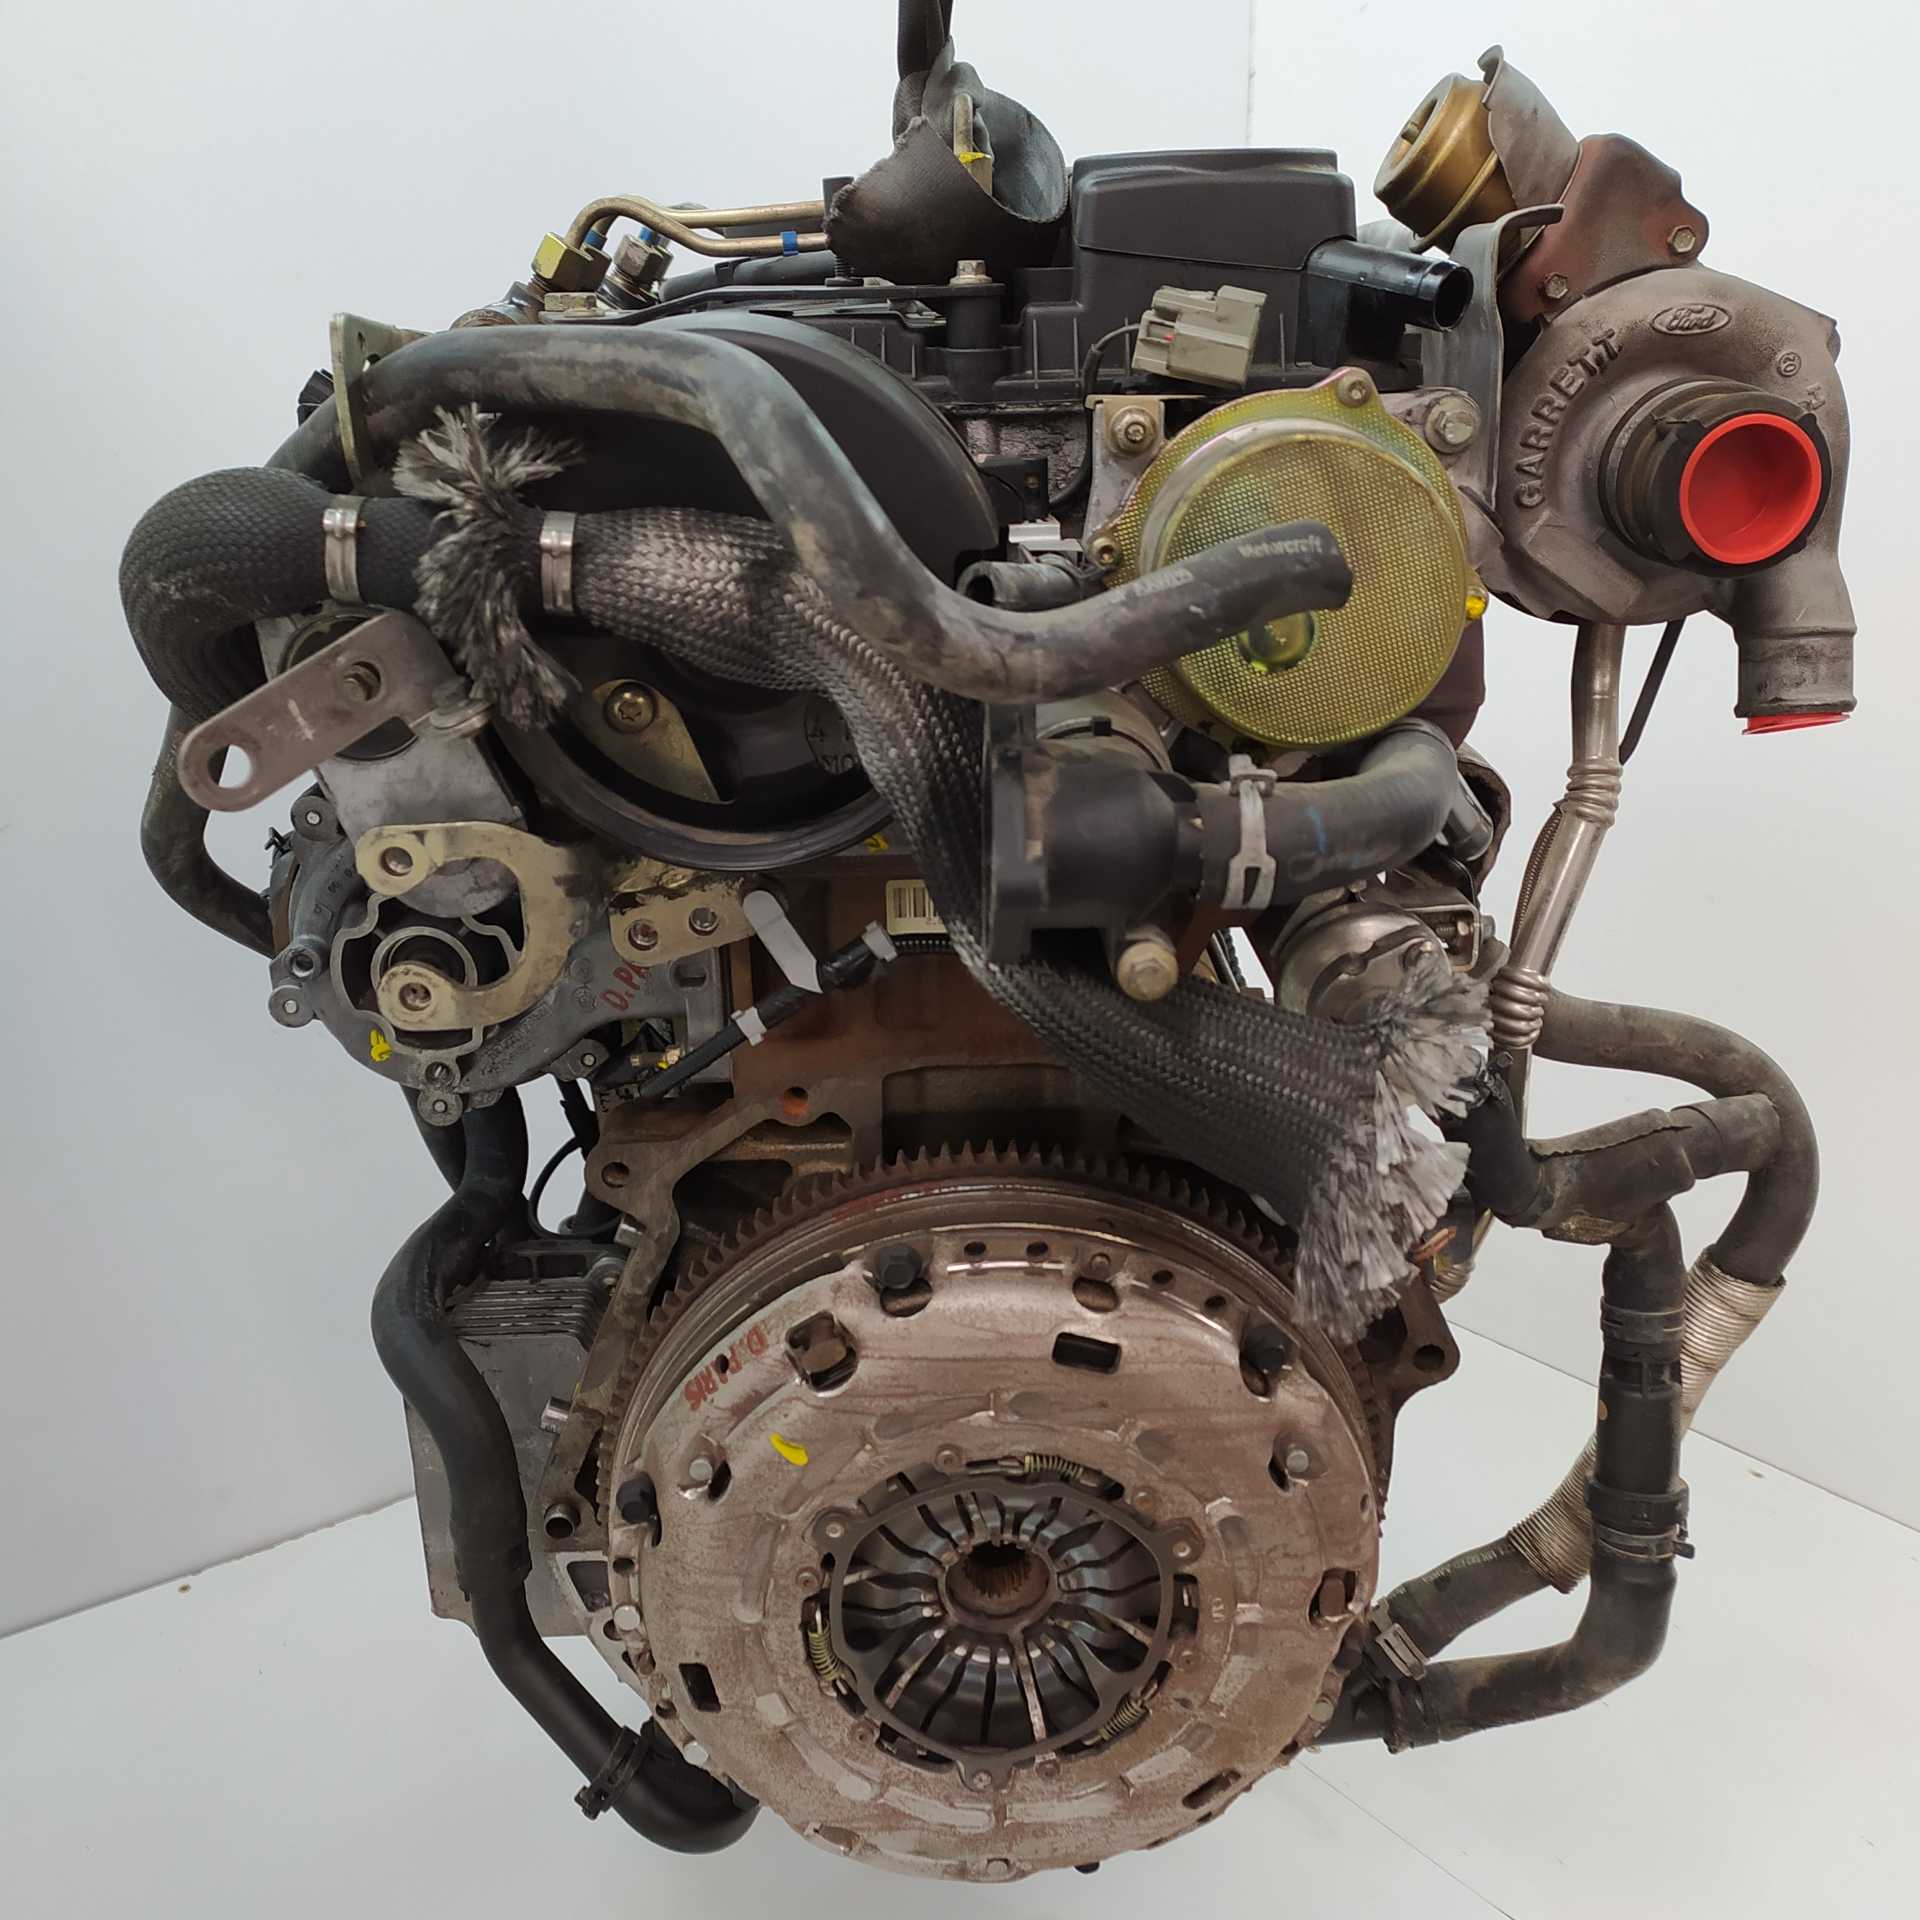 MOTOR COMPLETO FORD MONDEO III 2.0 TDCi (96 KW / 130 CV) (10.2001 - 03.2007)